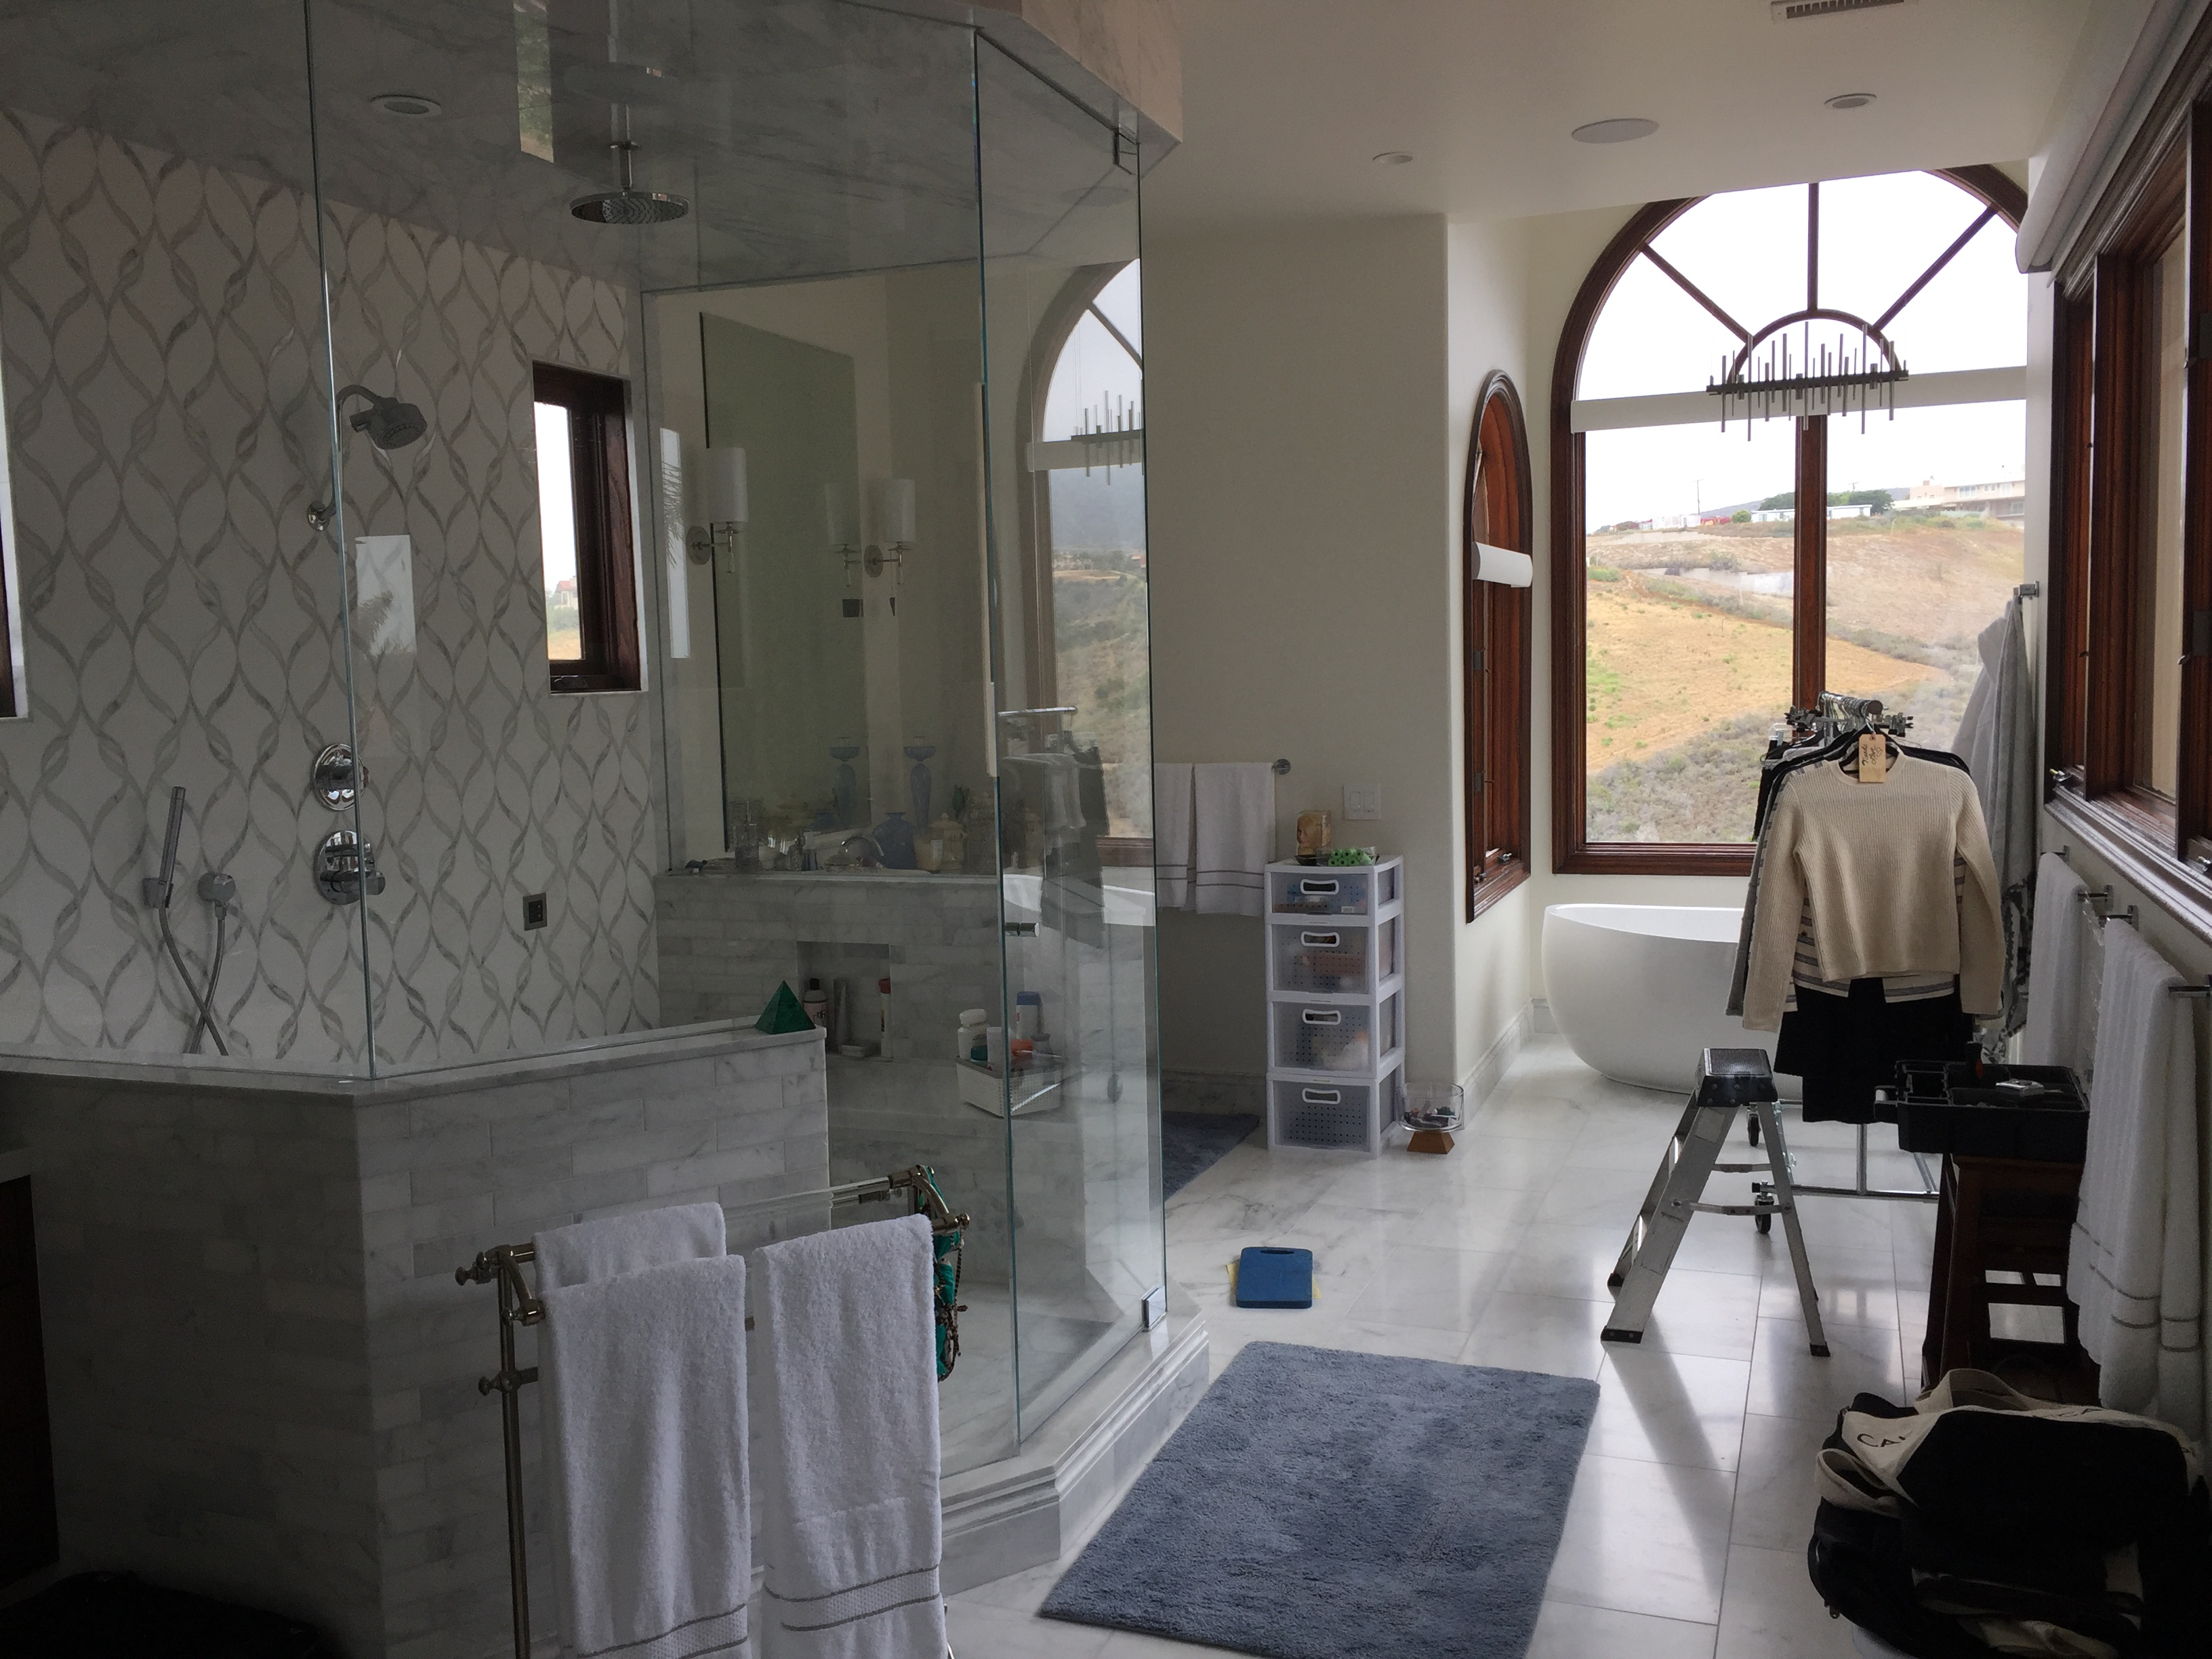 Window Screens installed in Bathroom in Calabasas Home